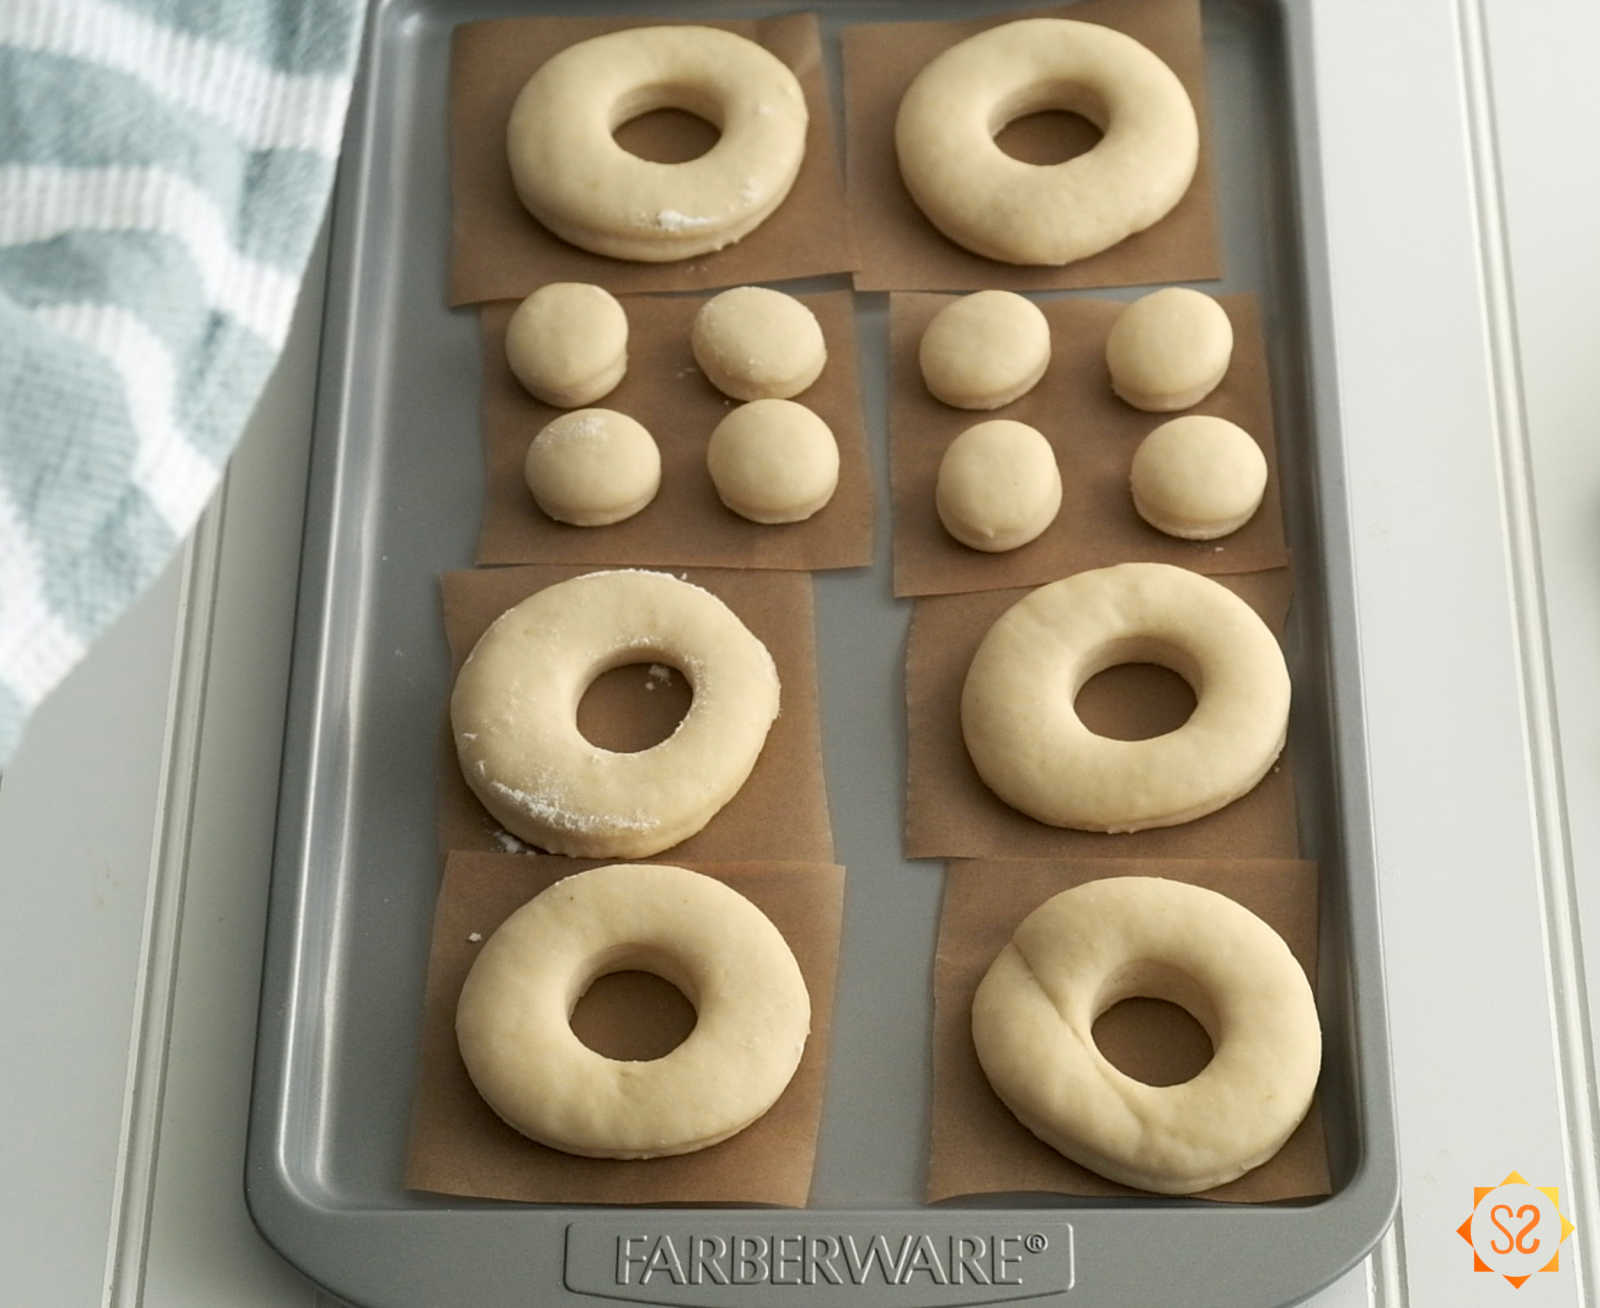 Donut dough on a baking tray after the dough has risen